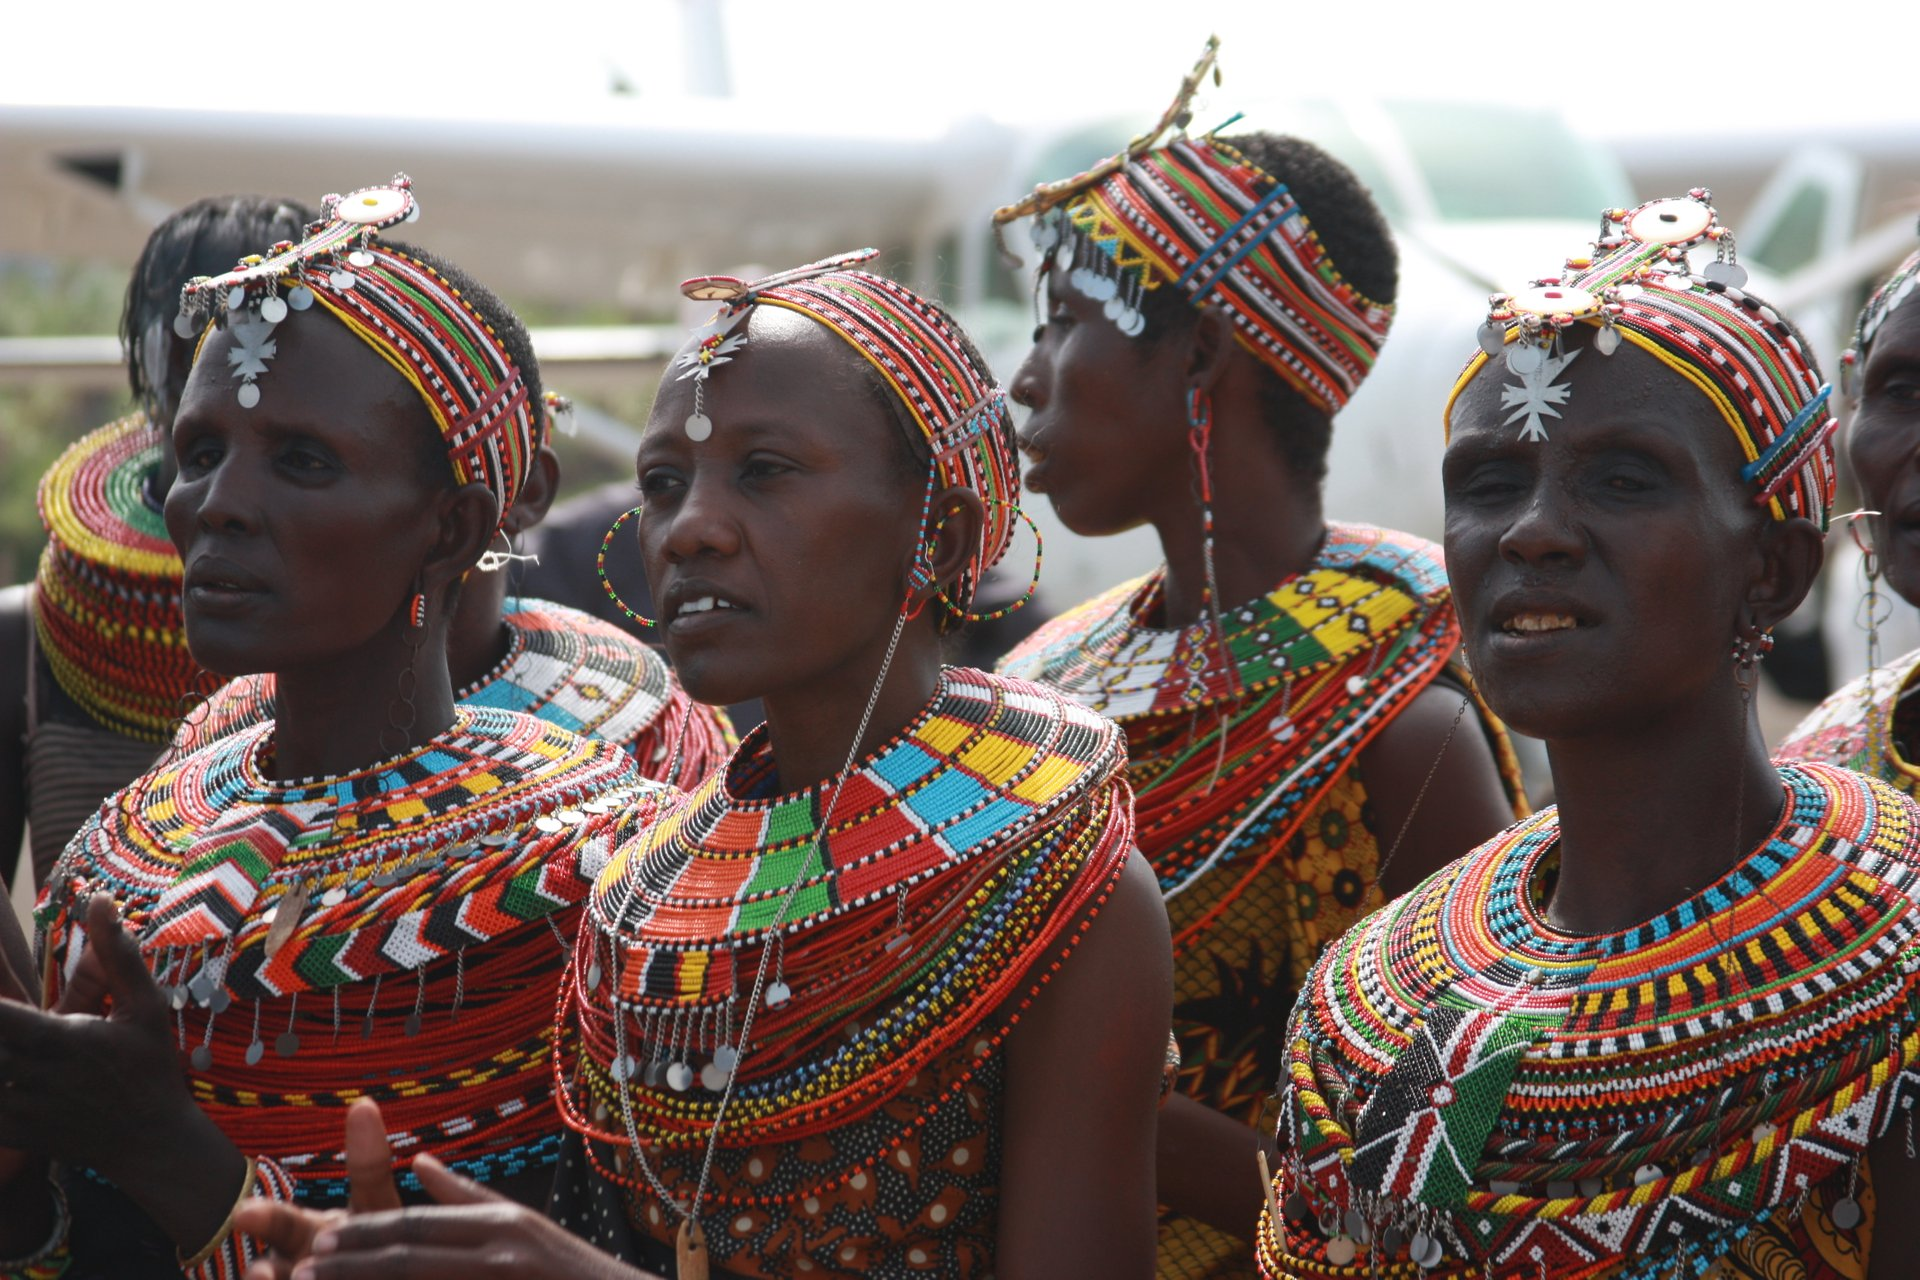 Marsabit Lake Turkana Cultural Festival in Kenya - Best Season 2019